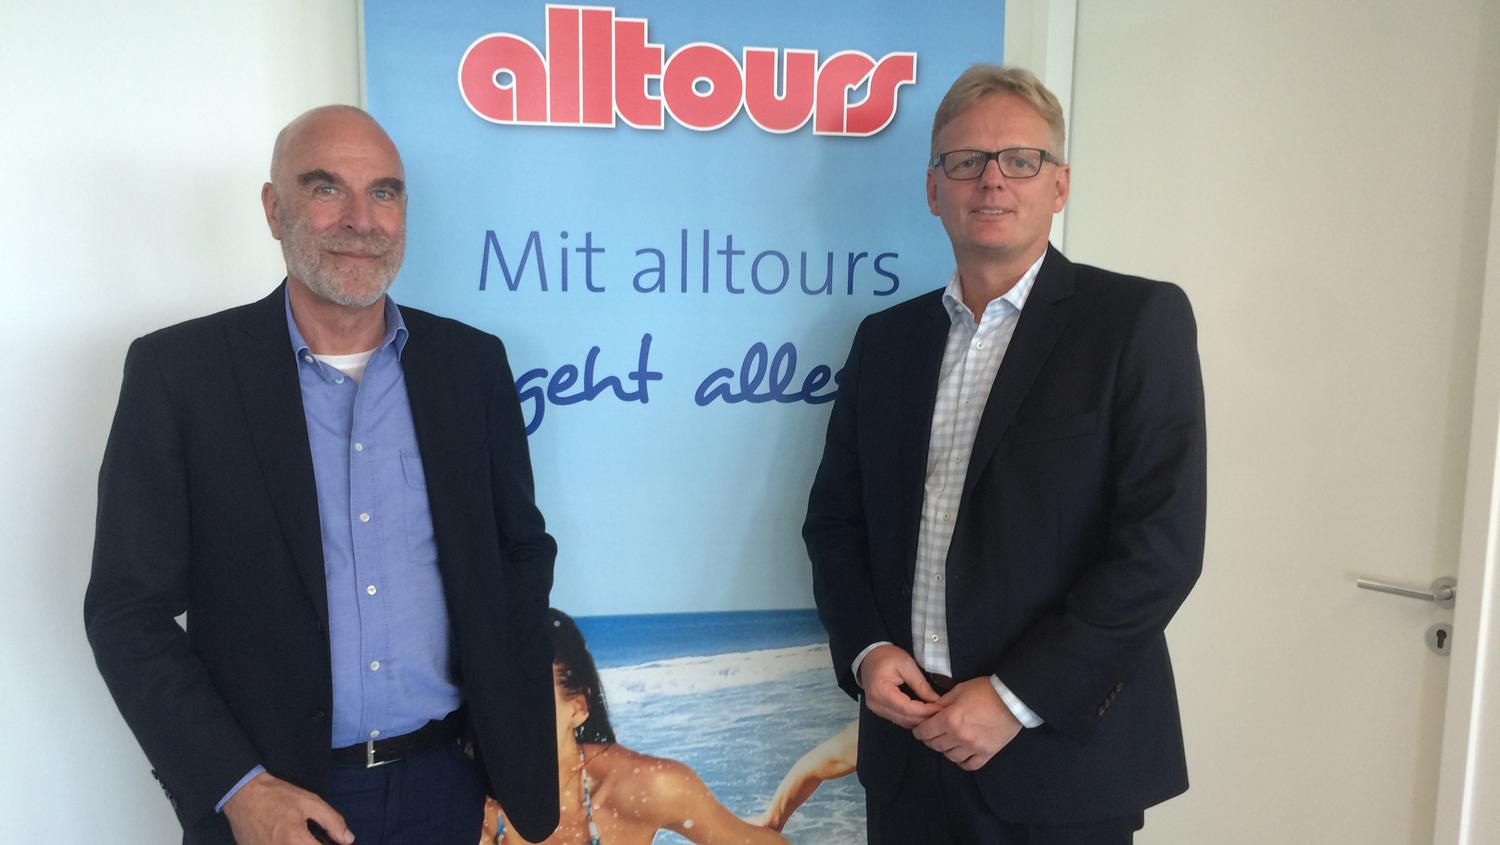 Willi Verhuven and tourism director Markus Daldrup.